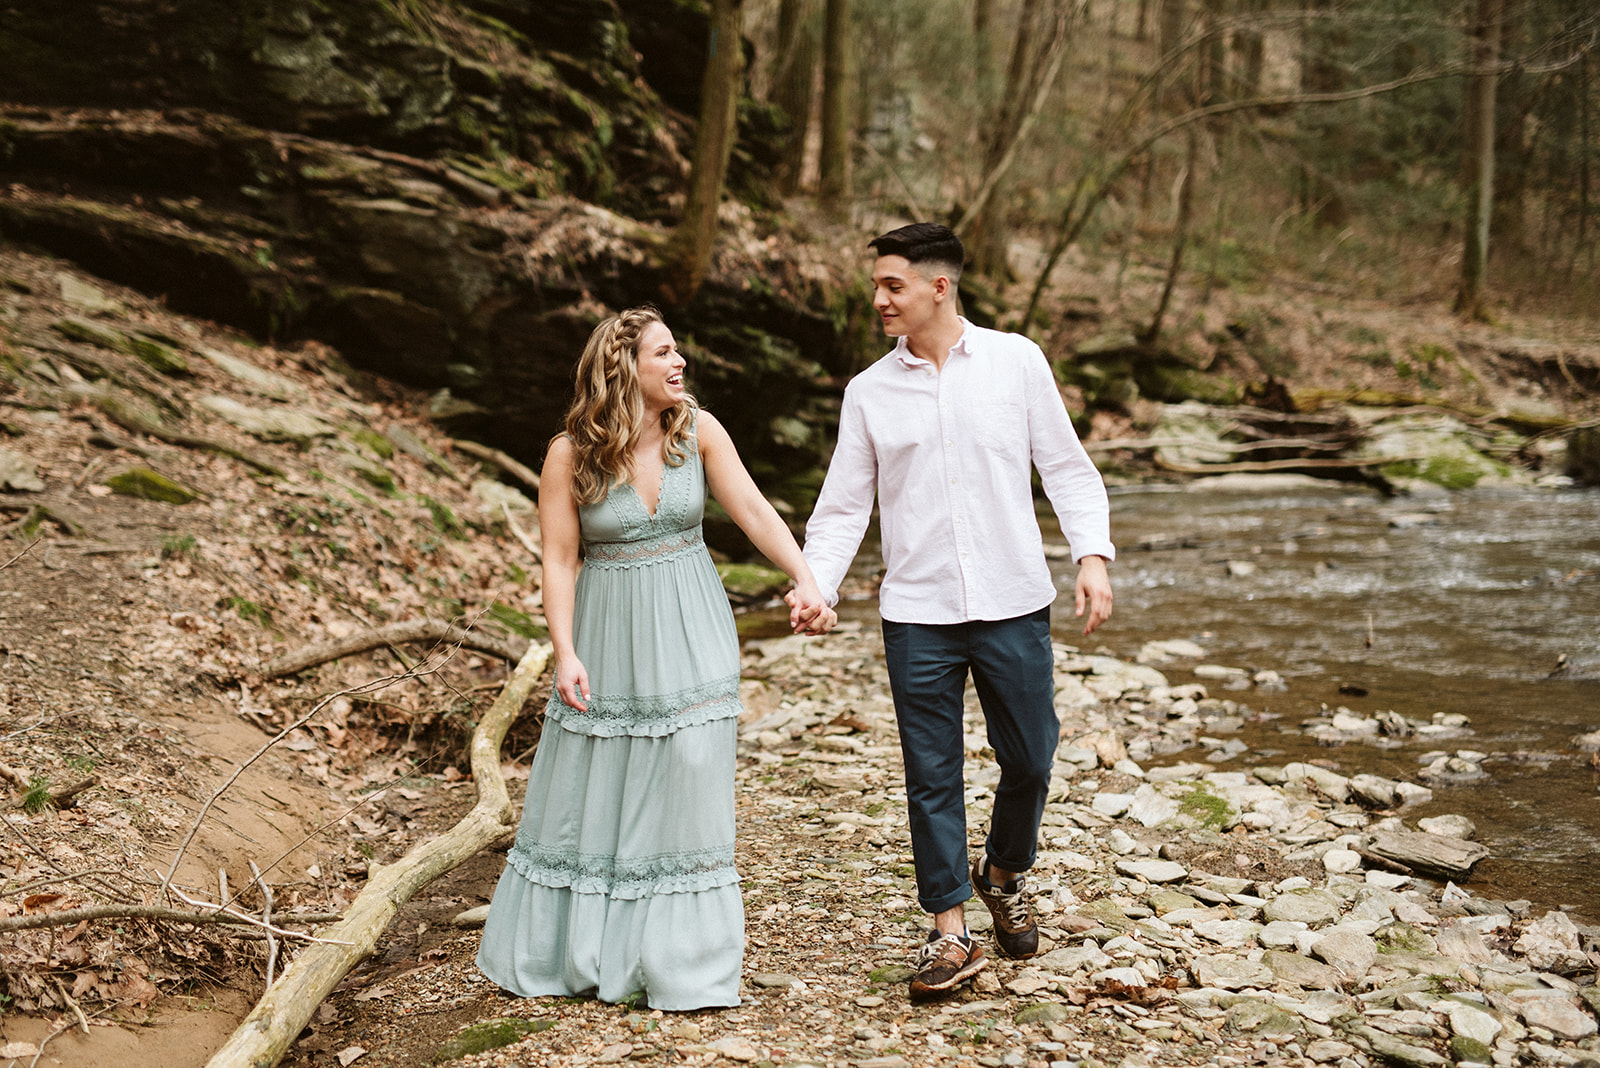 Engagement session at Tucquan Glen Nature Preserve.